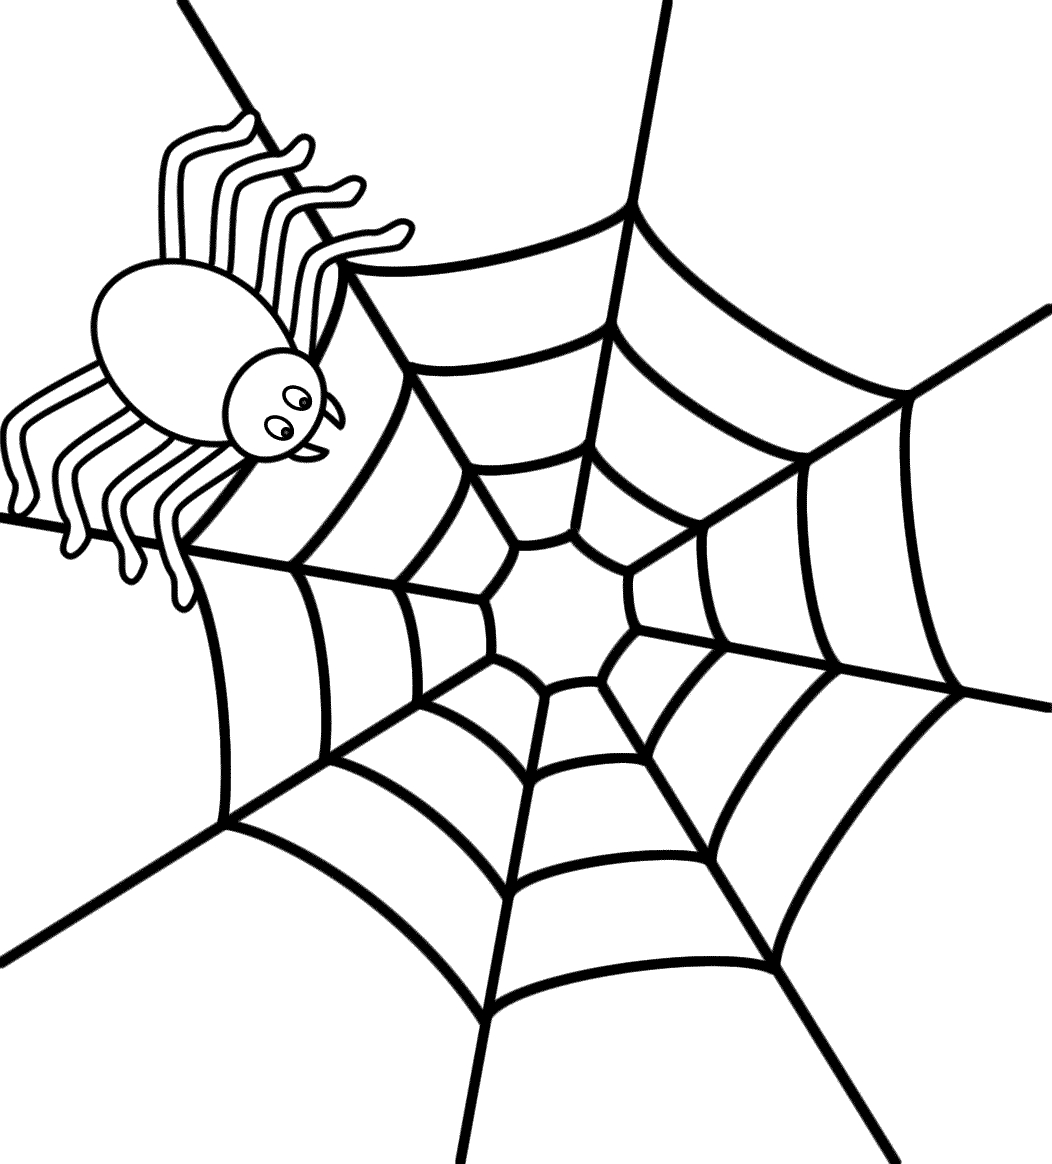 tarantula coloring pages halloween spider coloring pages at getcoloringscom free coloring tarantula pages